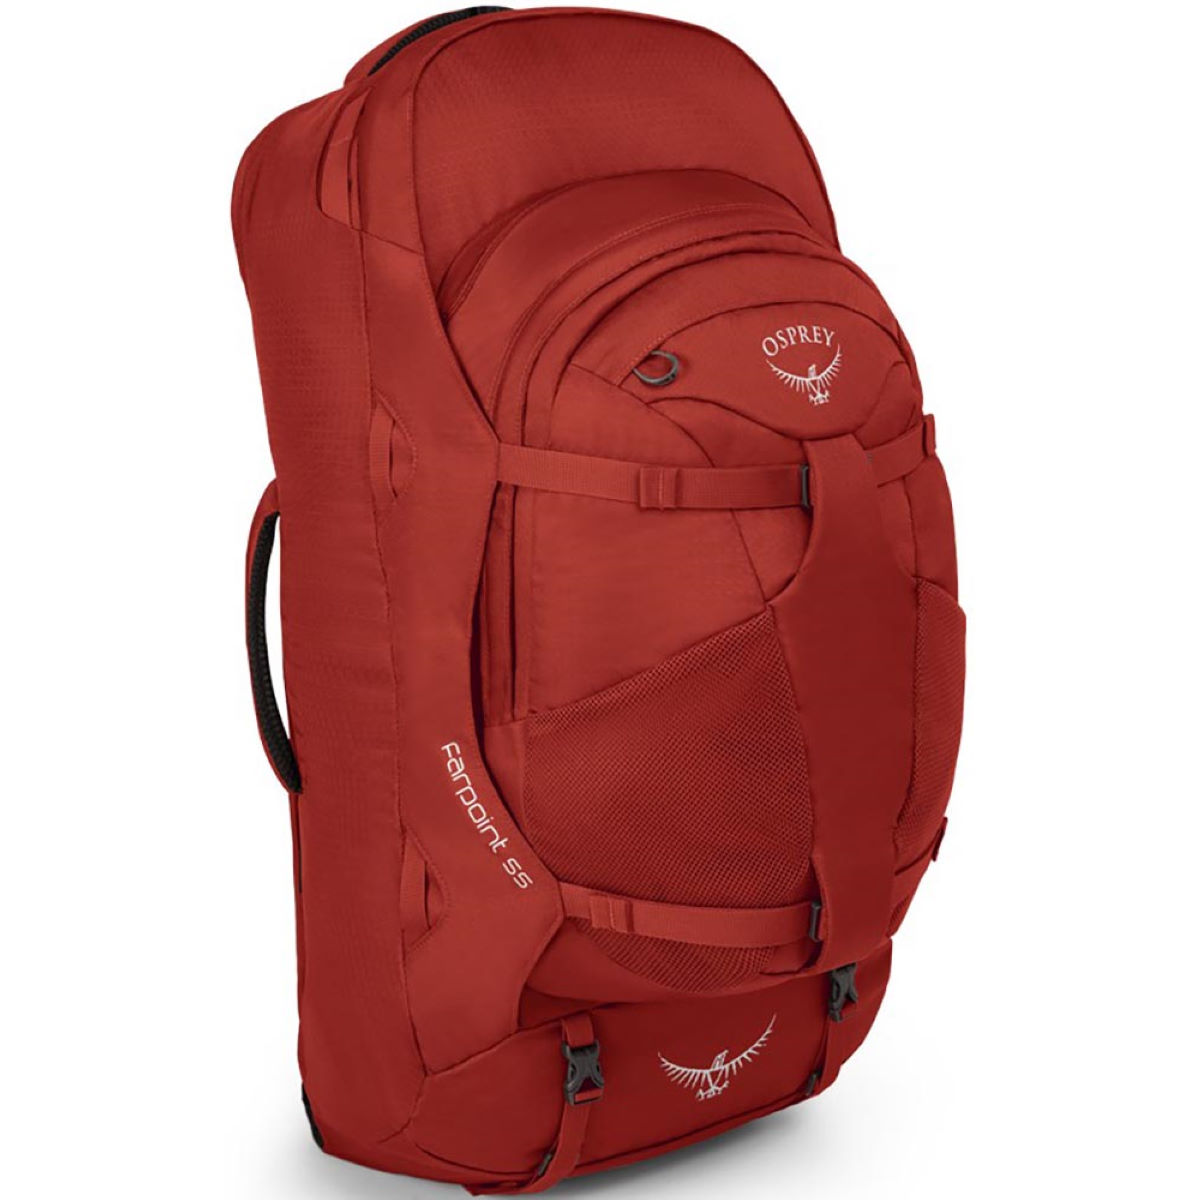 Osprey Osprey Farpoint 55 Backpack   Rucksacks